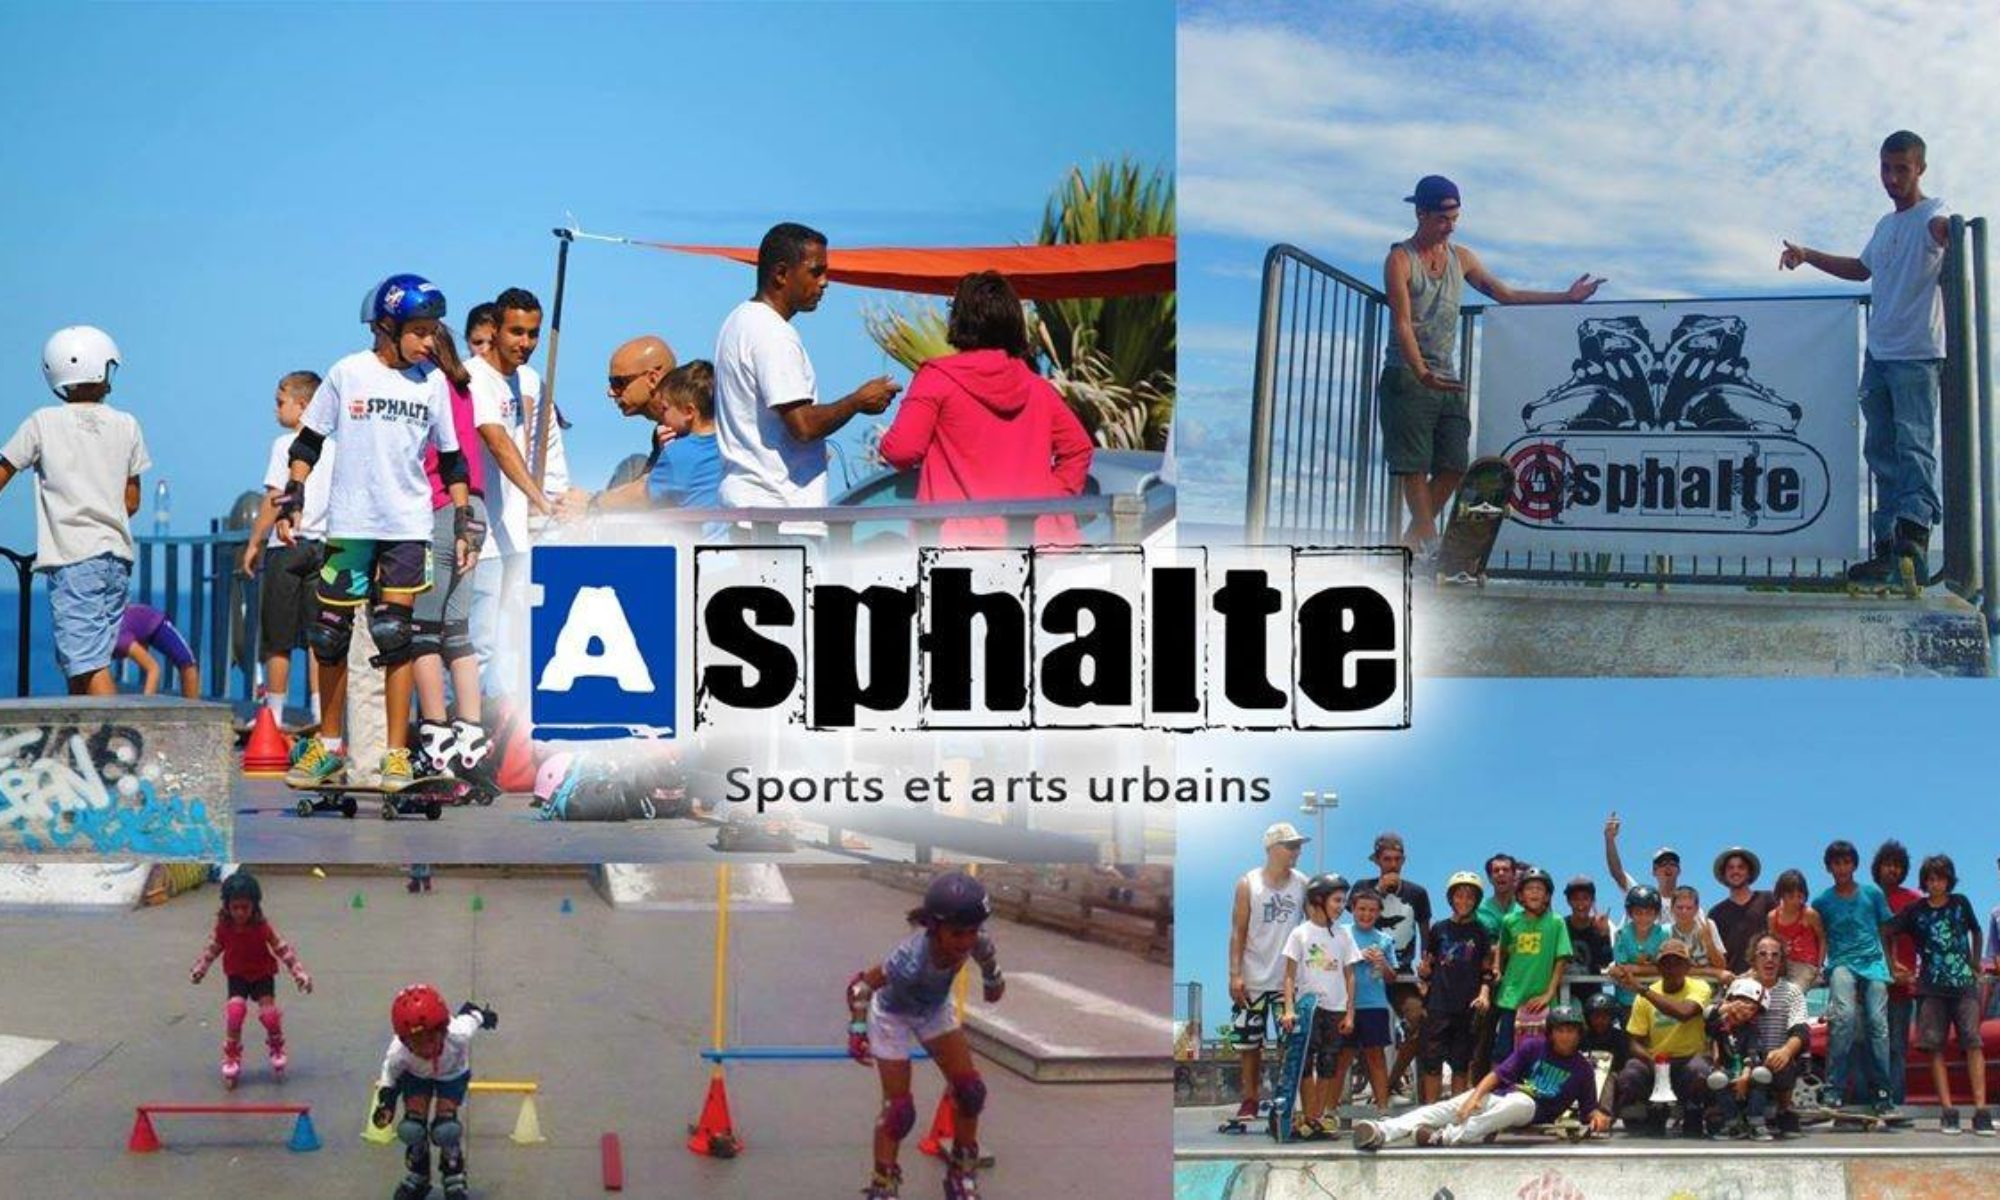 ASSOCIATION ASPHALTE